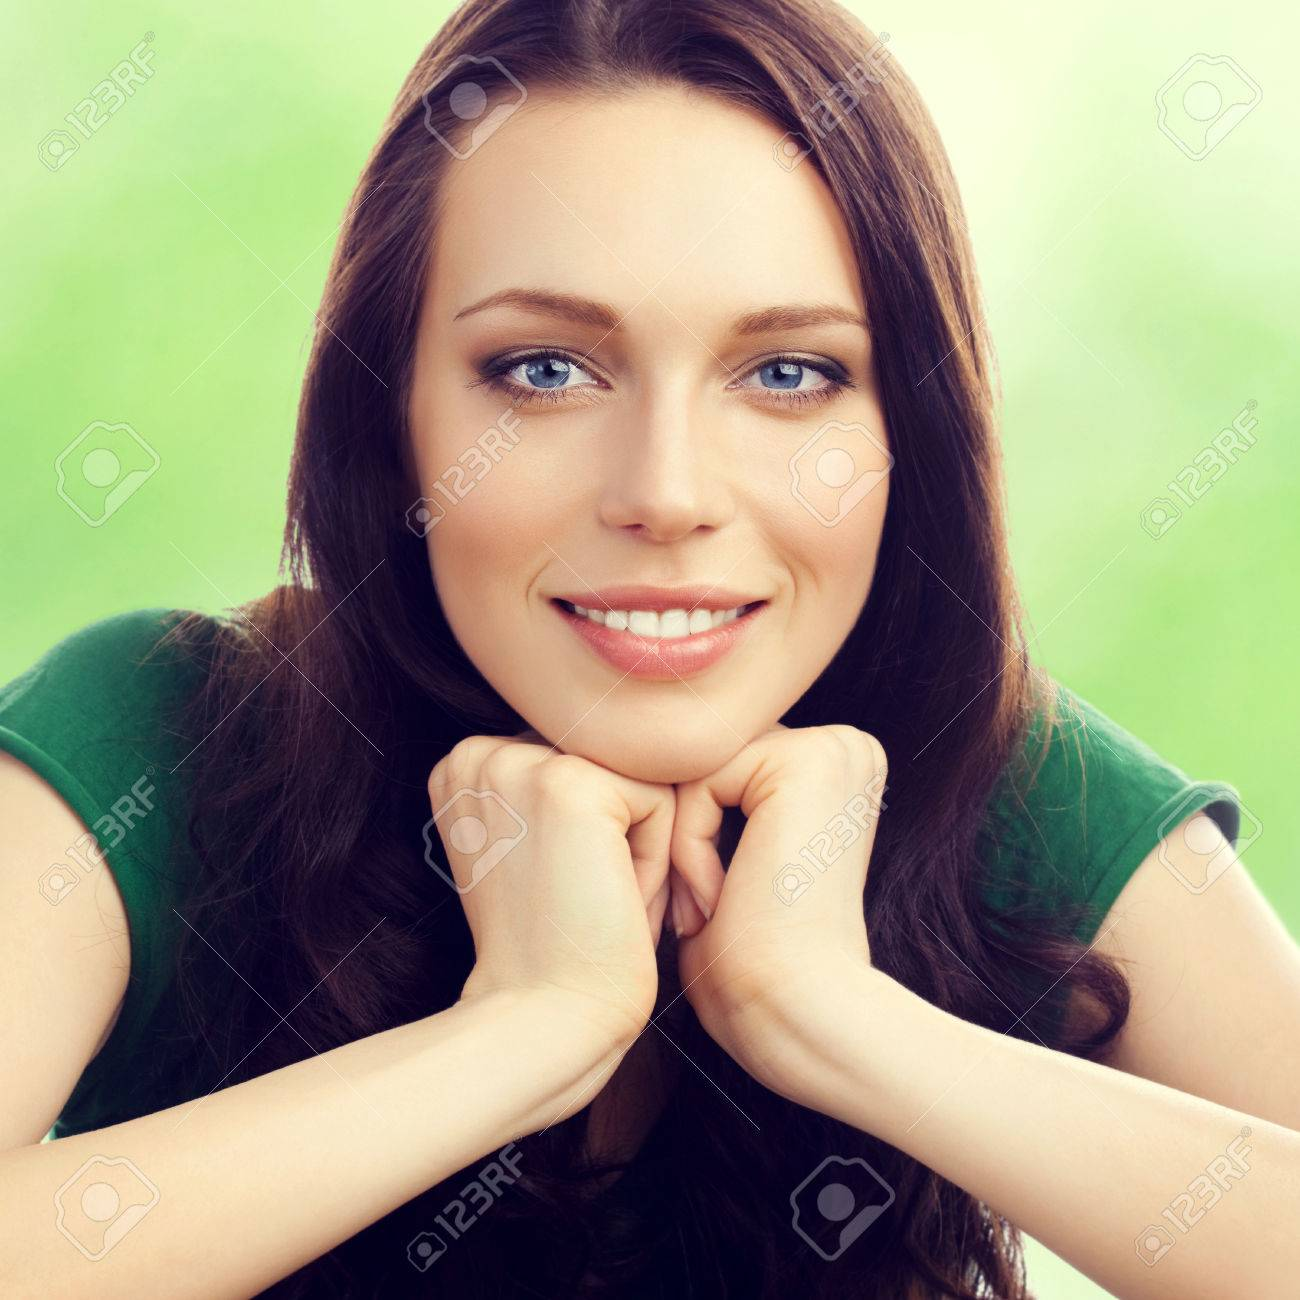 Portrait of cheerful smiling beautiful young brunette woman, outdoor - 42478365